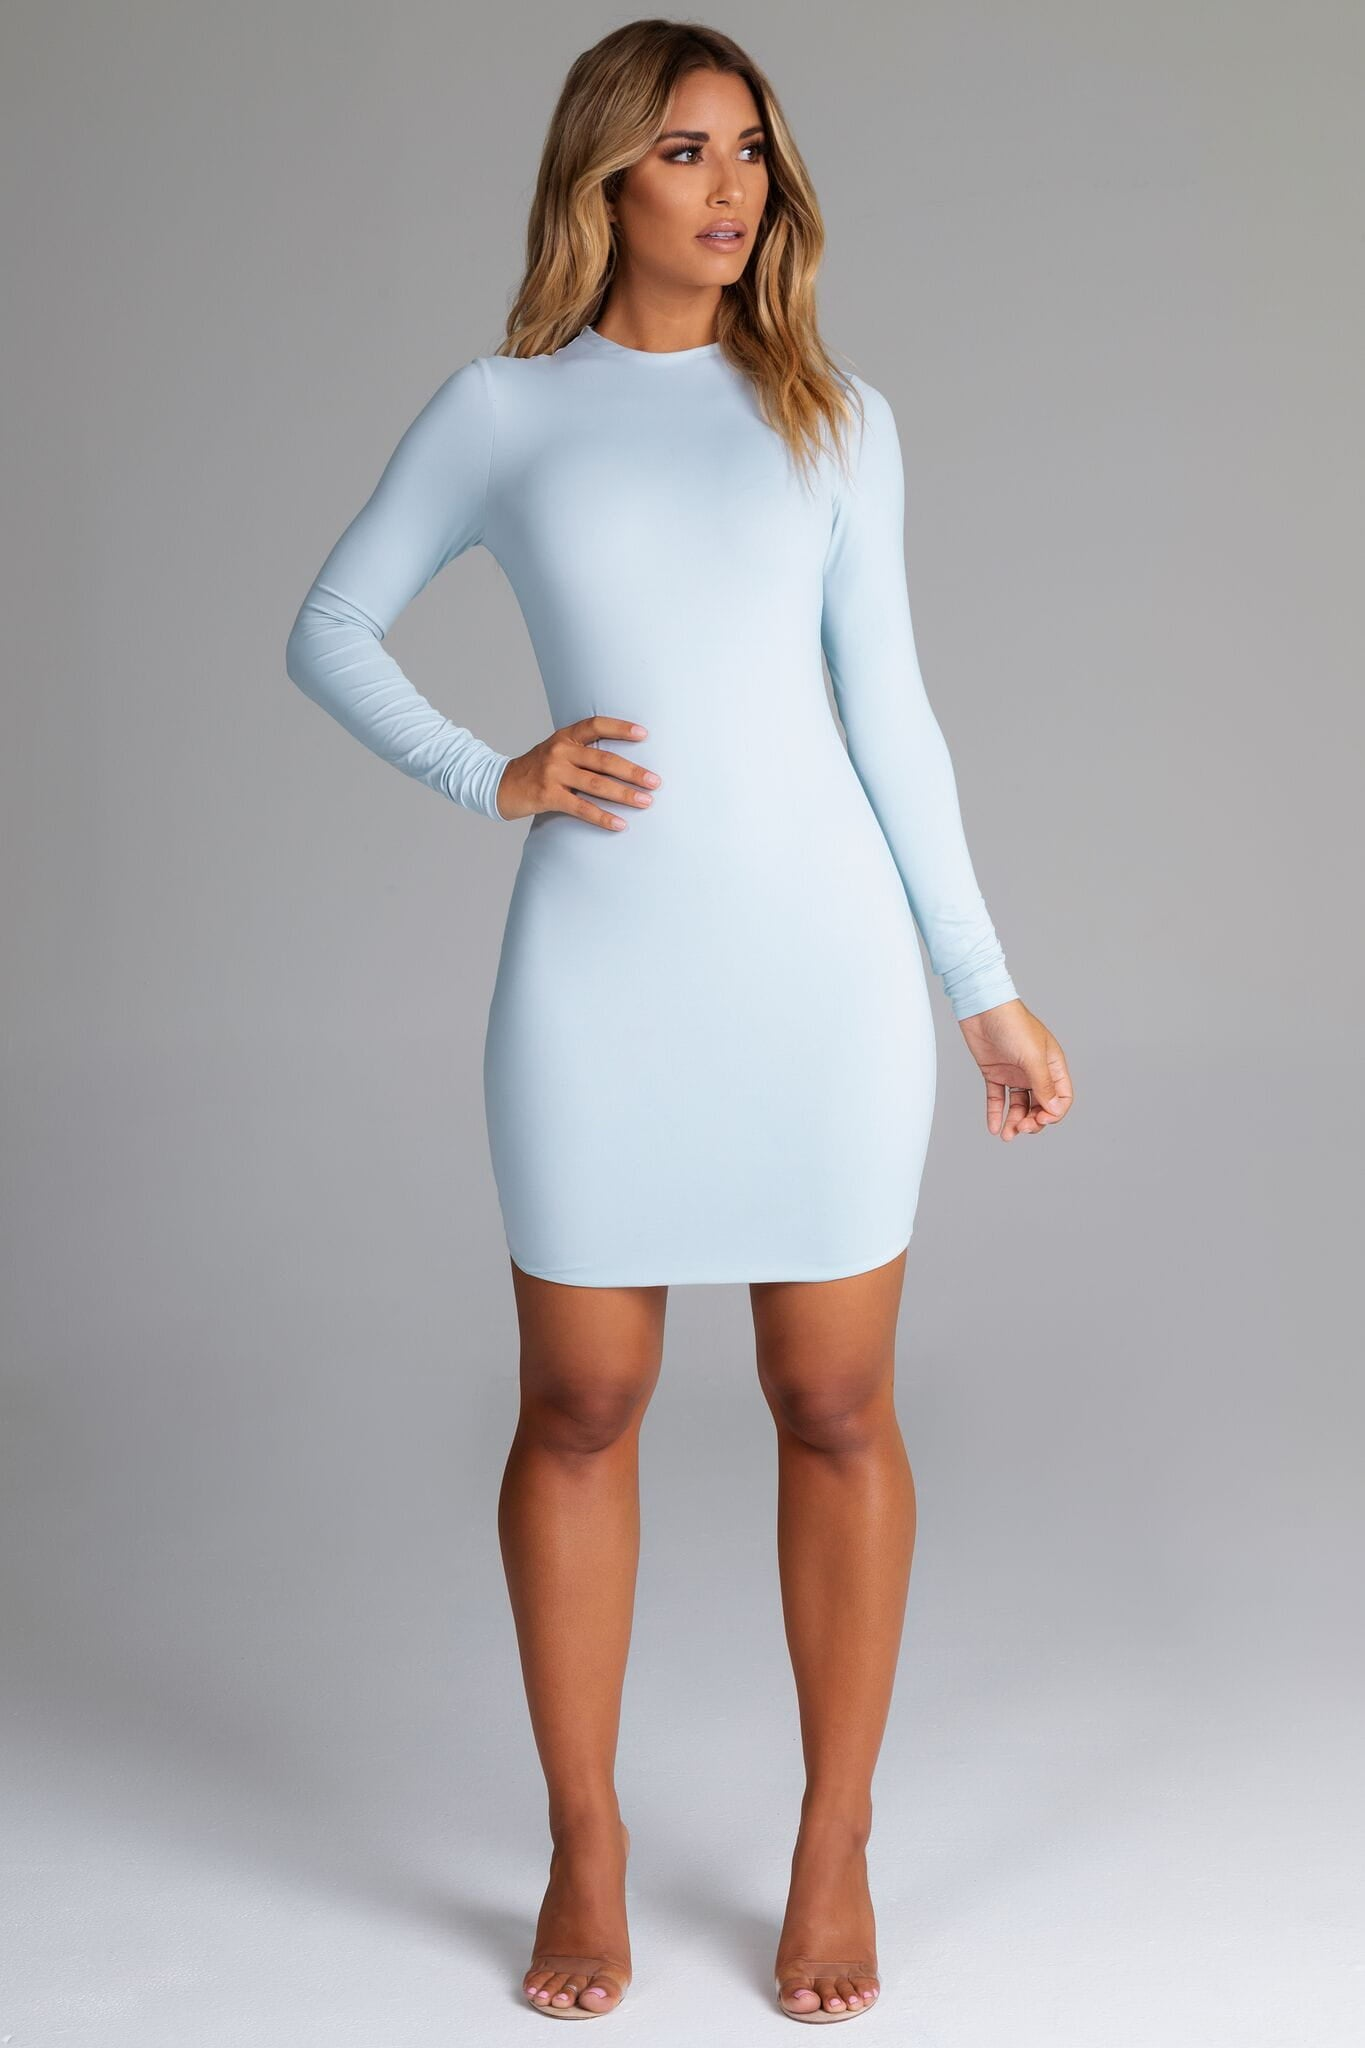 1a72c0d8c2 Kylie Long Sleeve Mini Dress - Baby Blue - MESHKI